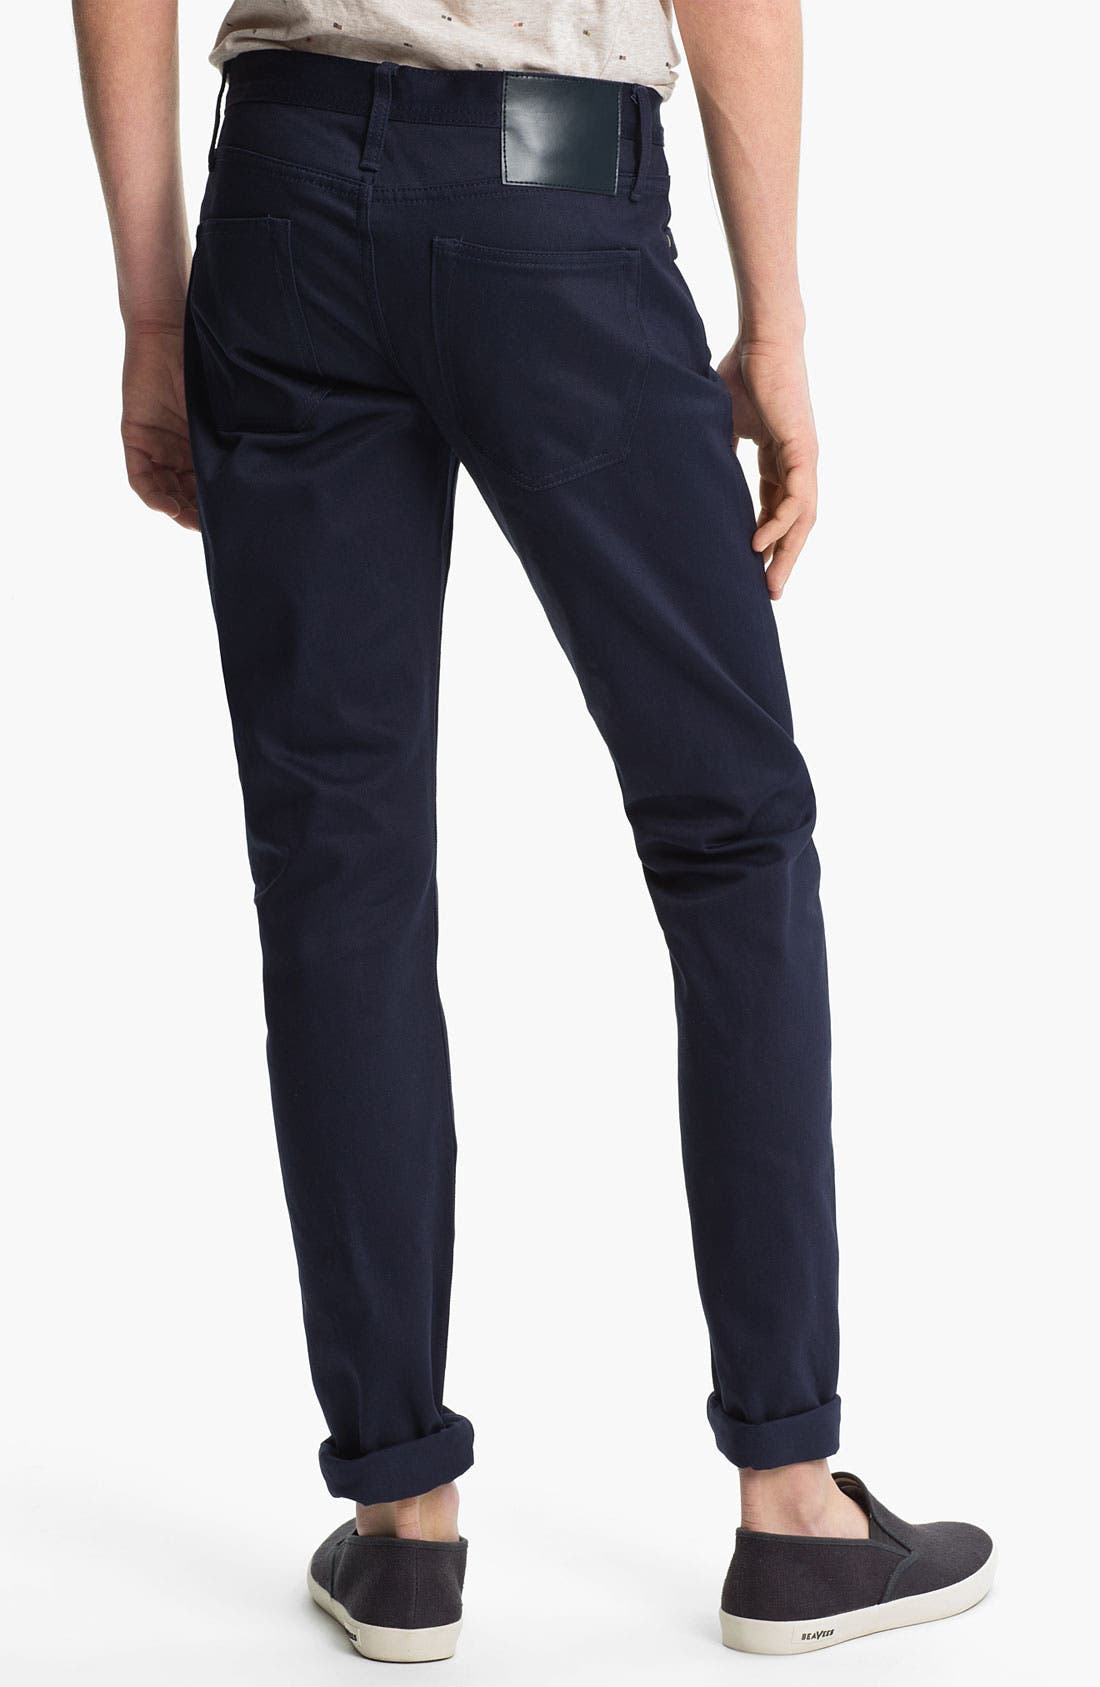 Main Image - The Unbranded Brand 'UB108' Skinny Fit Selvedge Chinos (Online Exclusive)